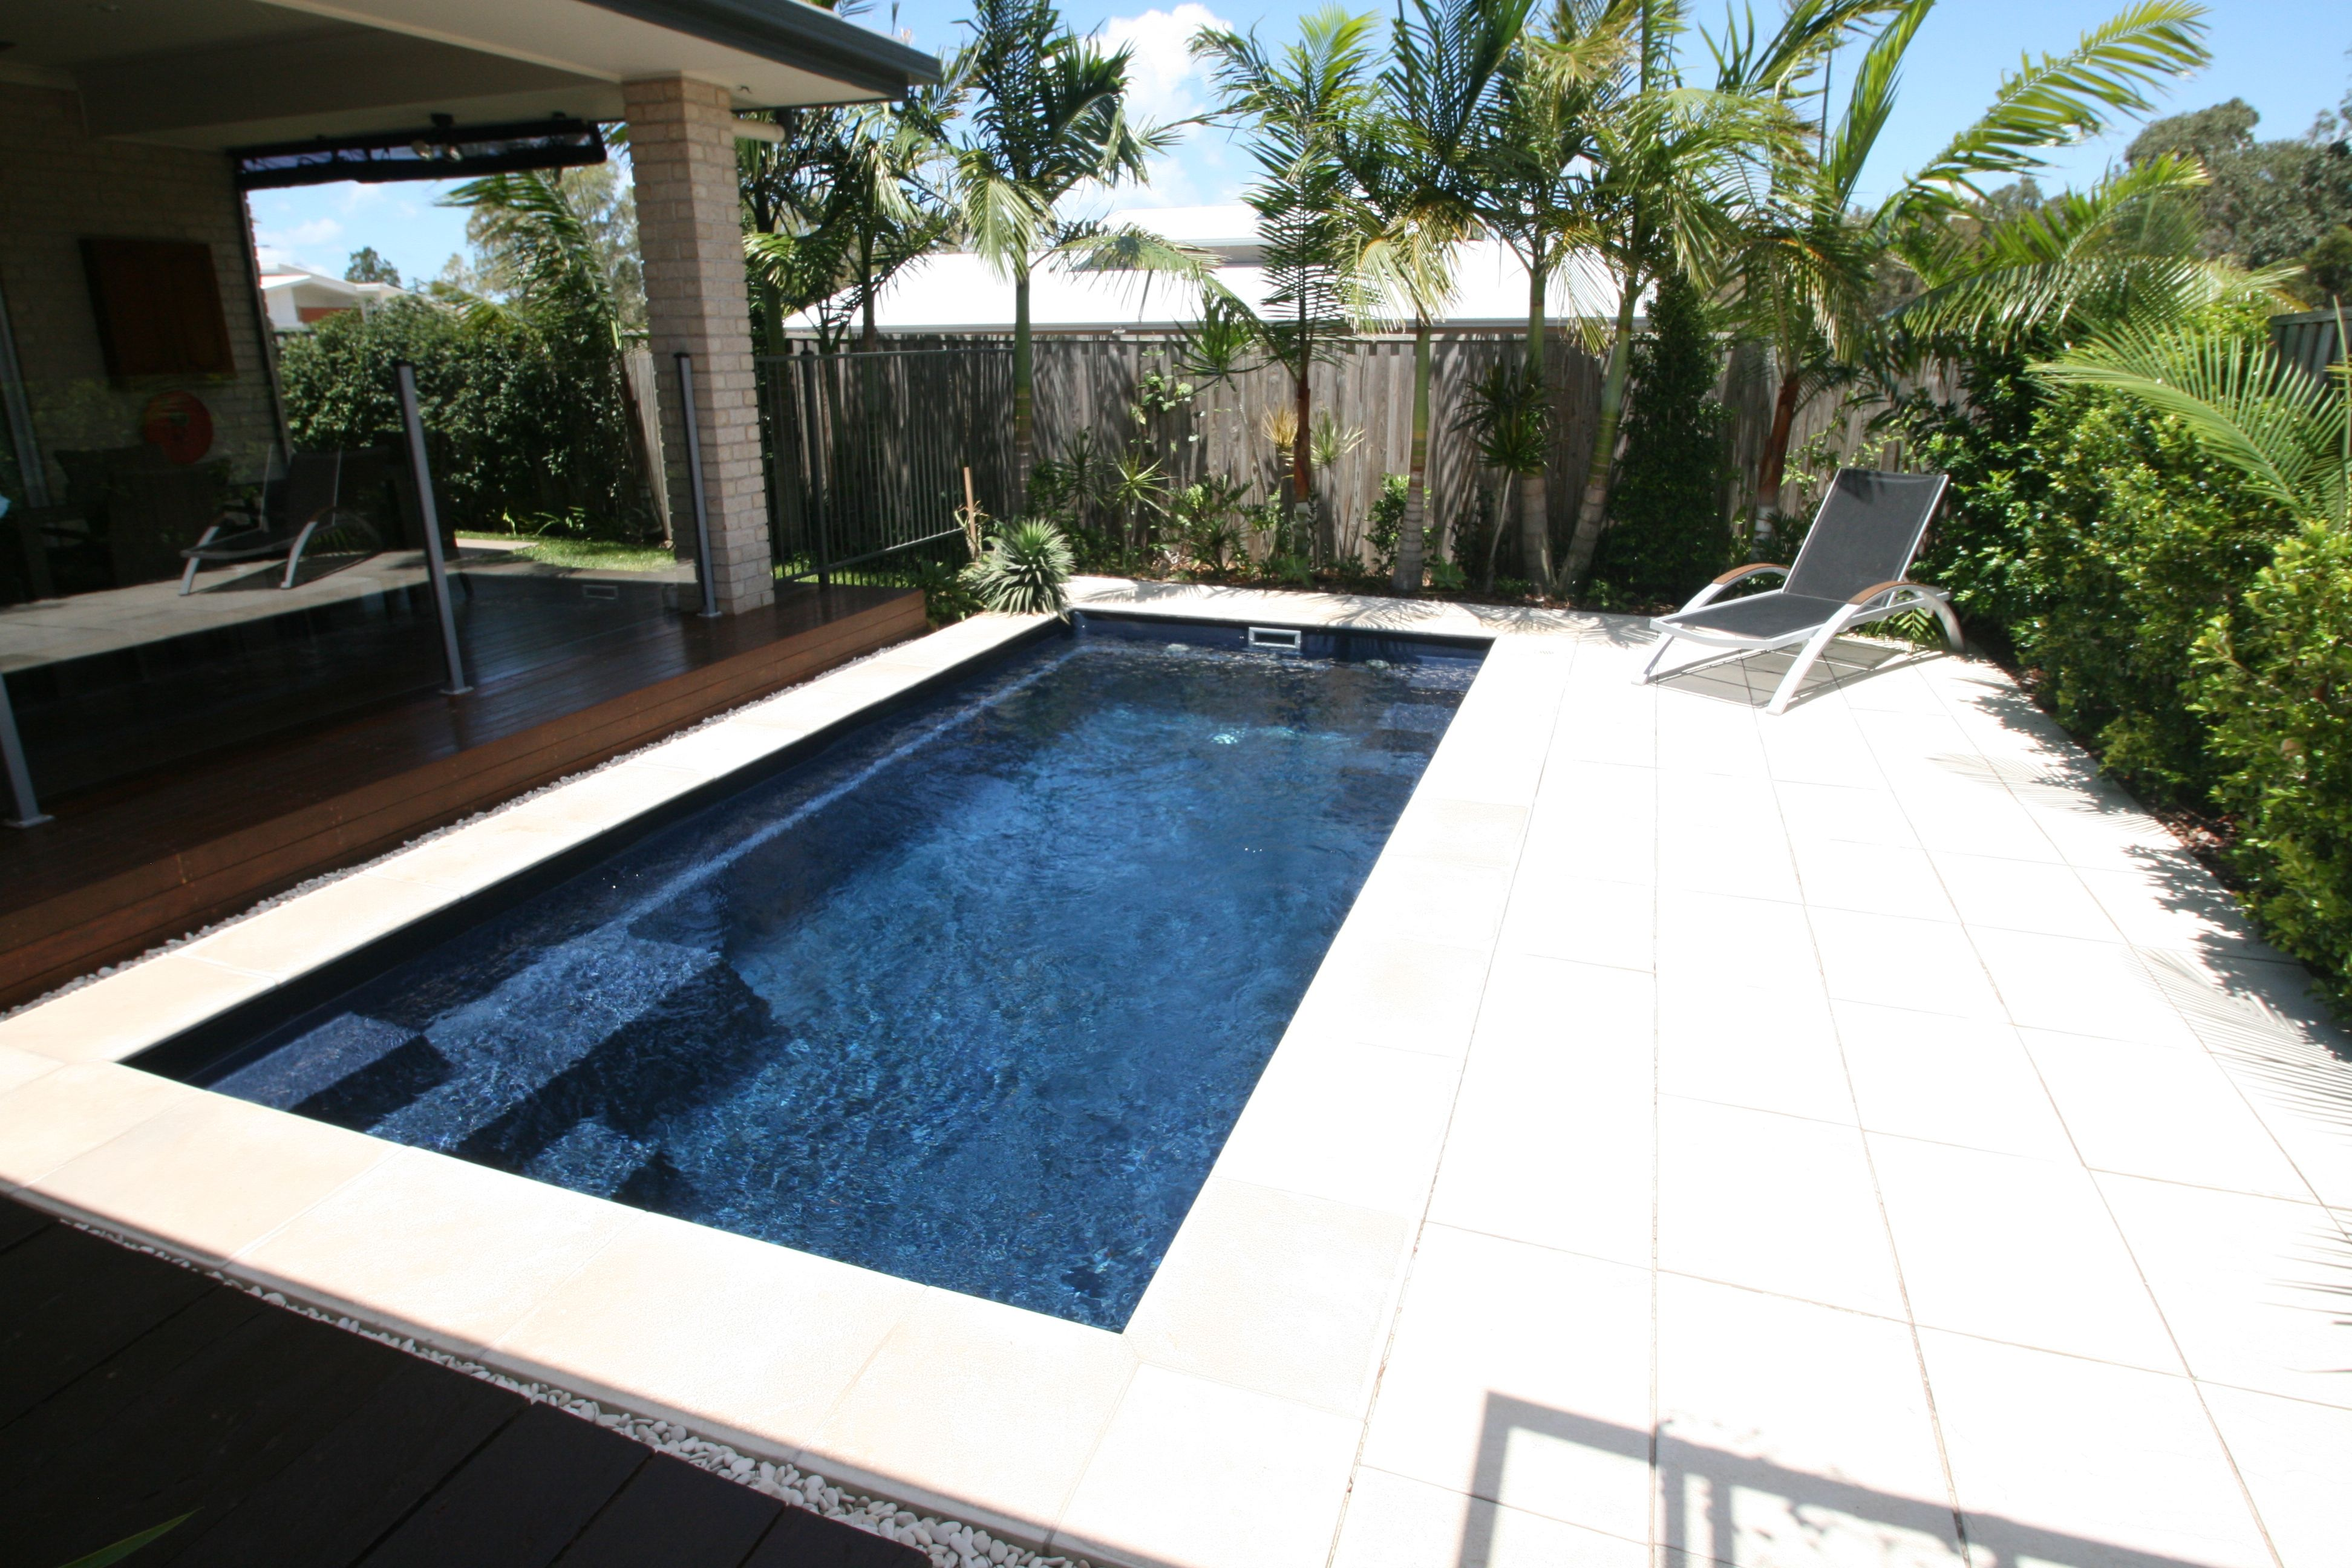 The Madeira pool is a modern, sleek inground fibreglass swimming pool.  Visit Narellan Pools to get a free quote from a qualified swimming pool  builder.